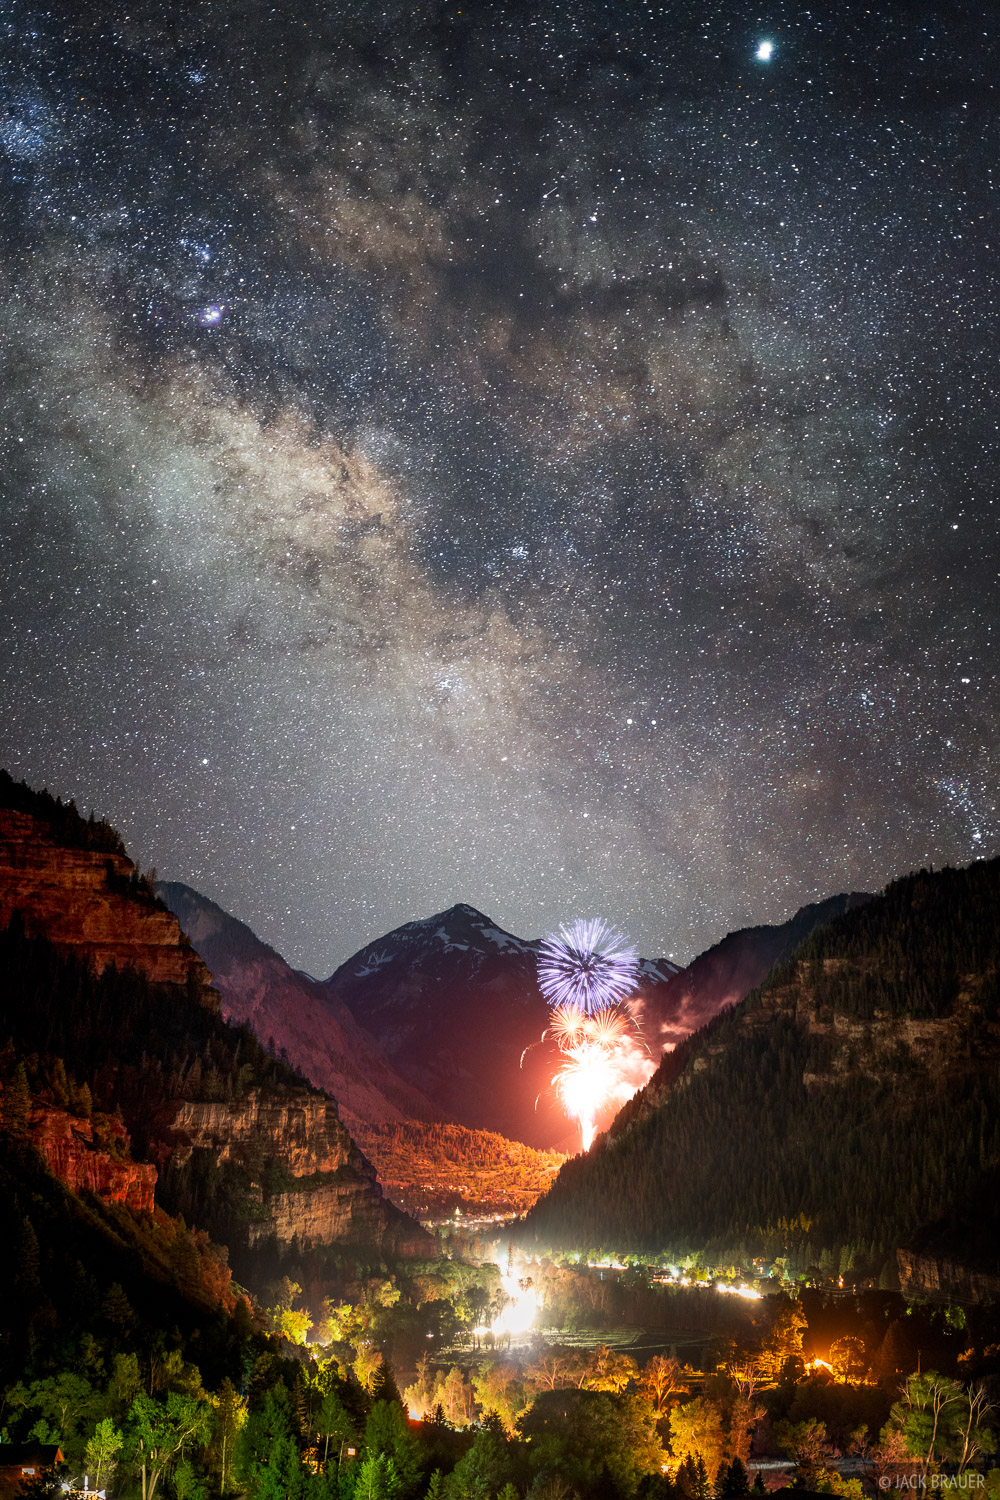 4th of July, Colorado, Ouray, San Juan Mountains, fireworks, Milky Way, photo